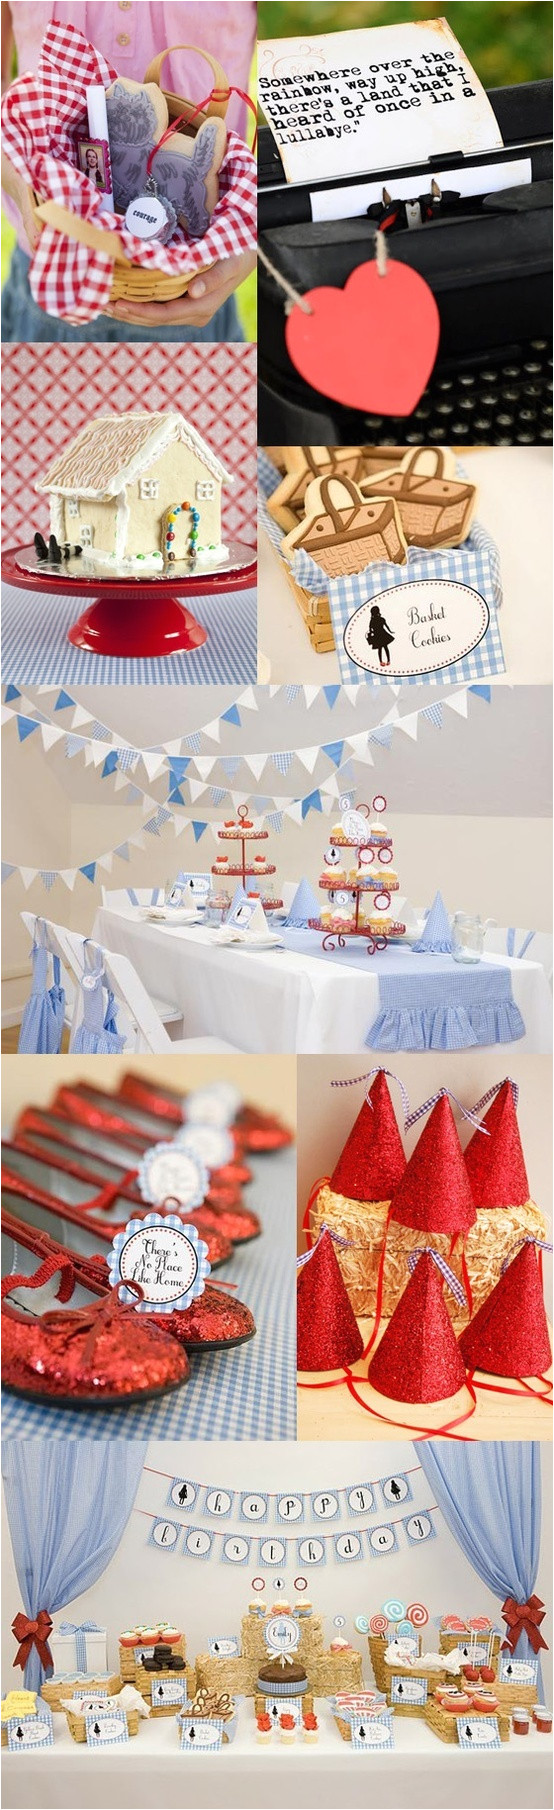 fun wizard of oz birthday party decoration ideas danielle lampert lampert medford bennett for loralie